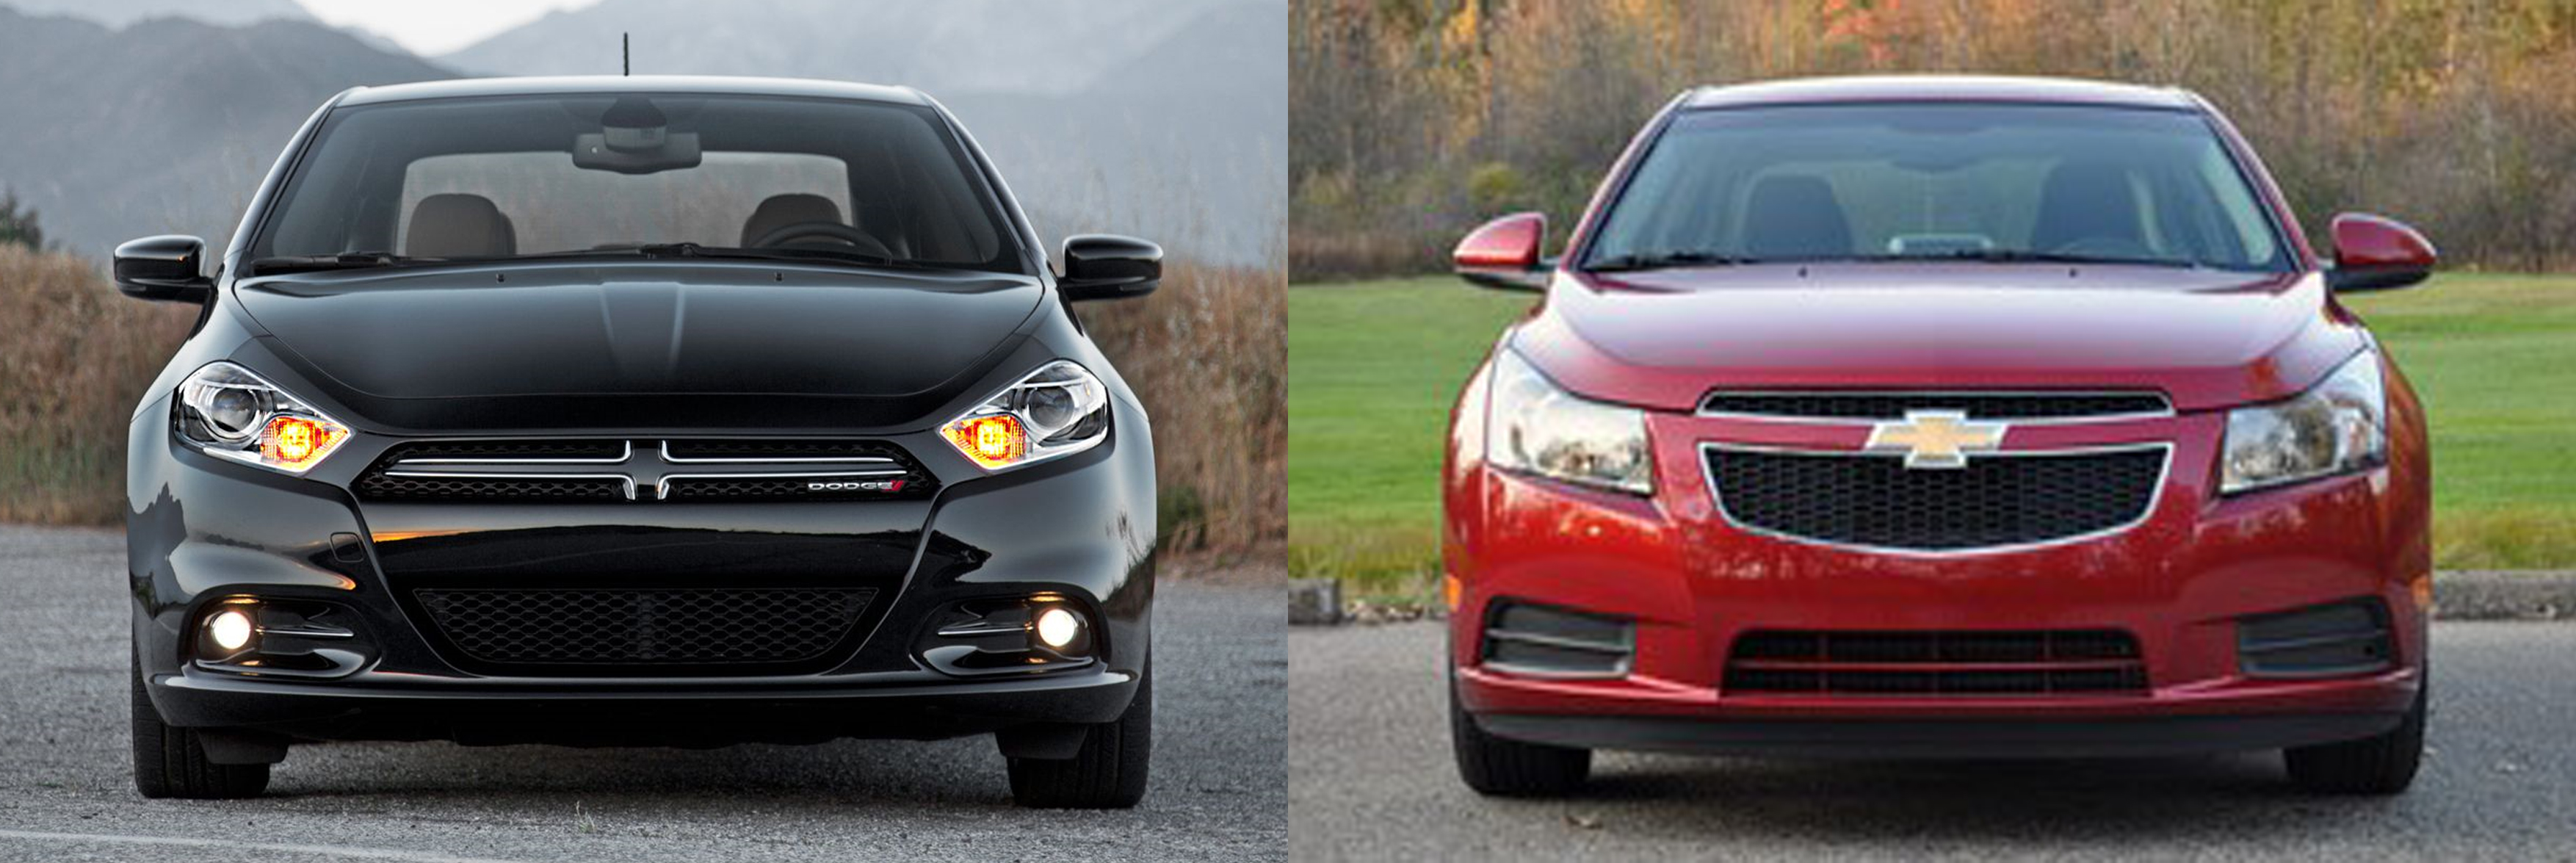 2013 Chevy Vs Ford Vs Dodge Autos Post